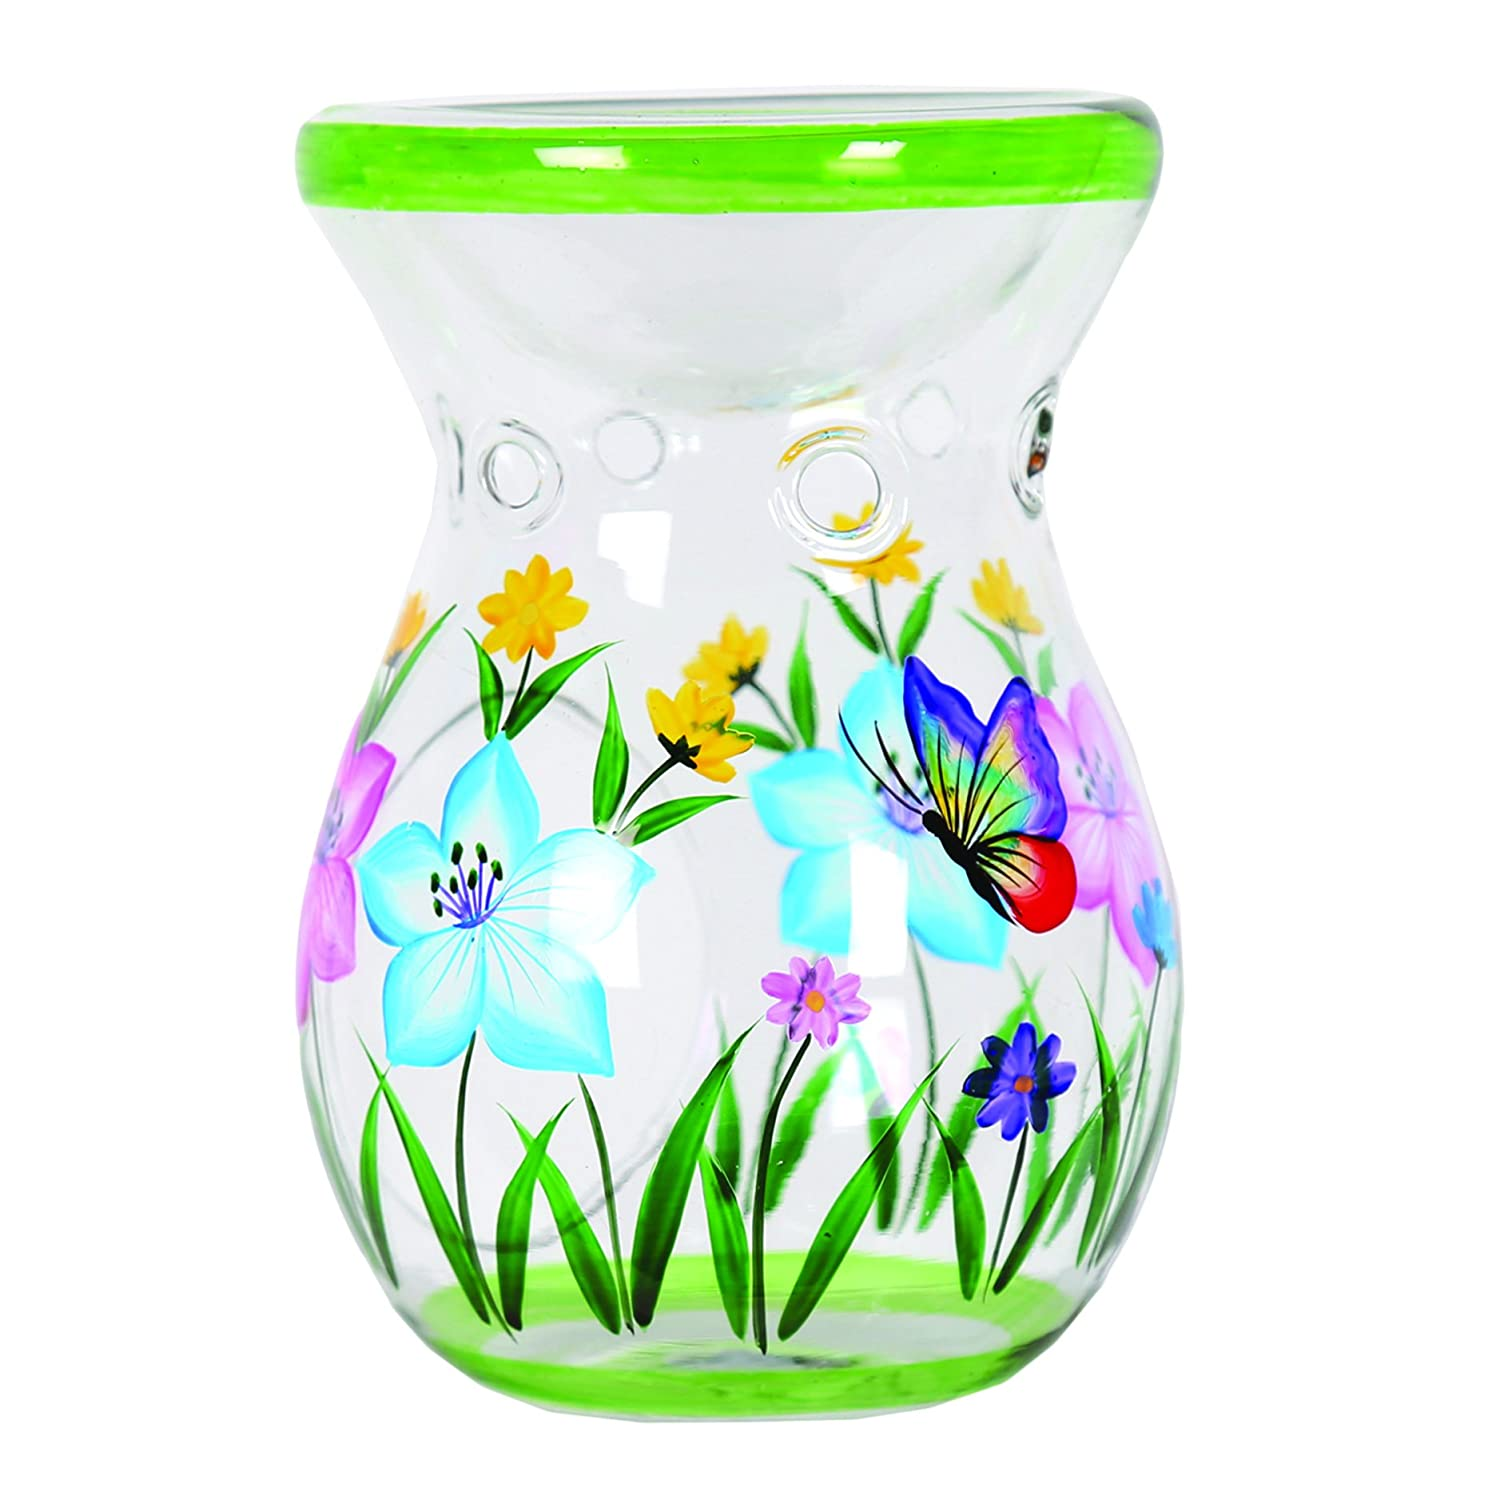 Aroma Accessories Hand Painted Butterfly Wax Melt Burner, Green, 14 cm VC1008